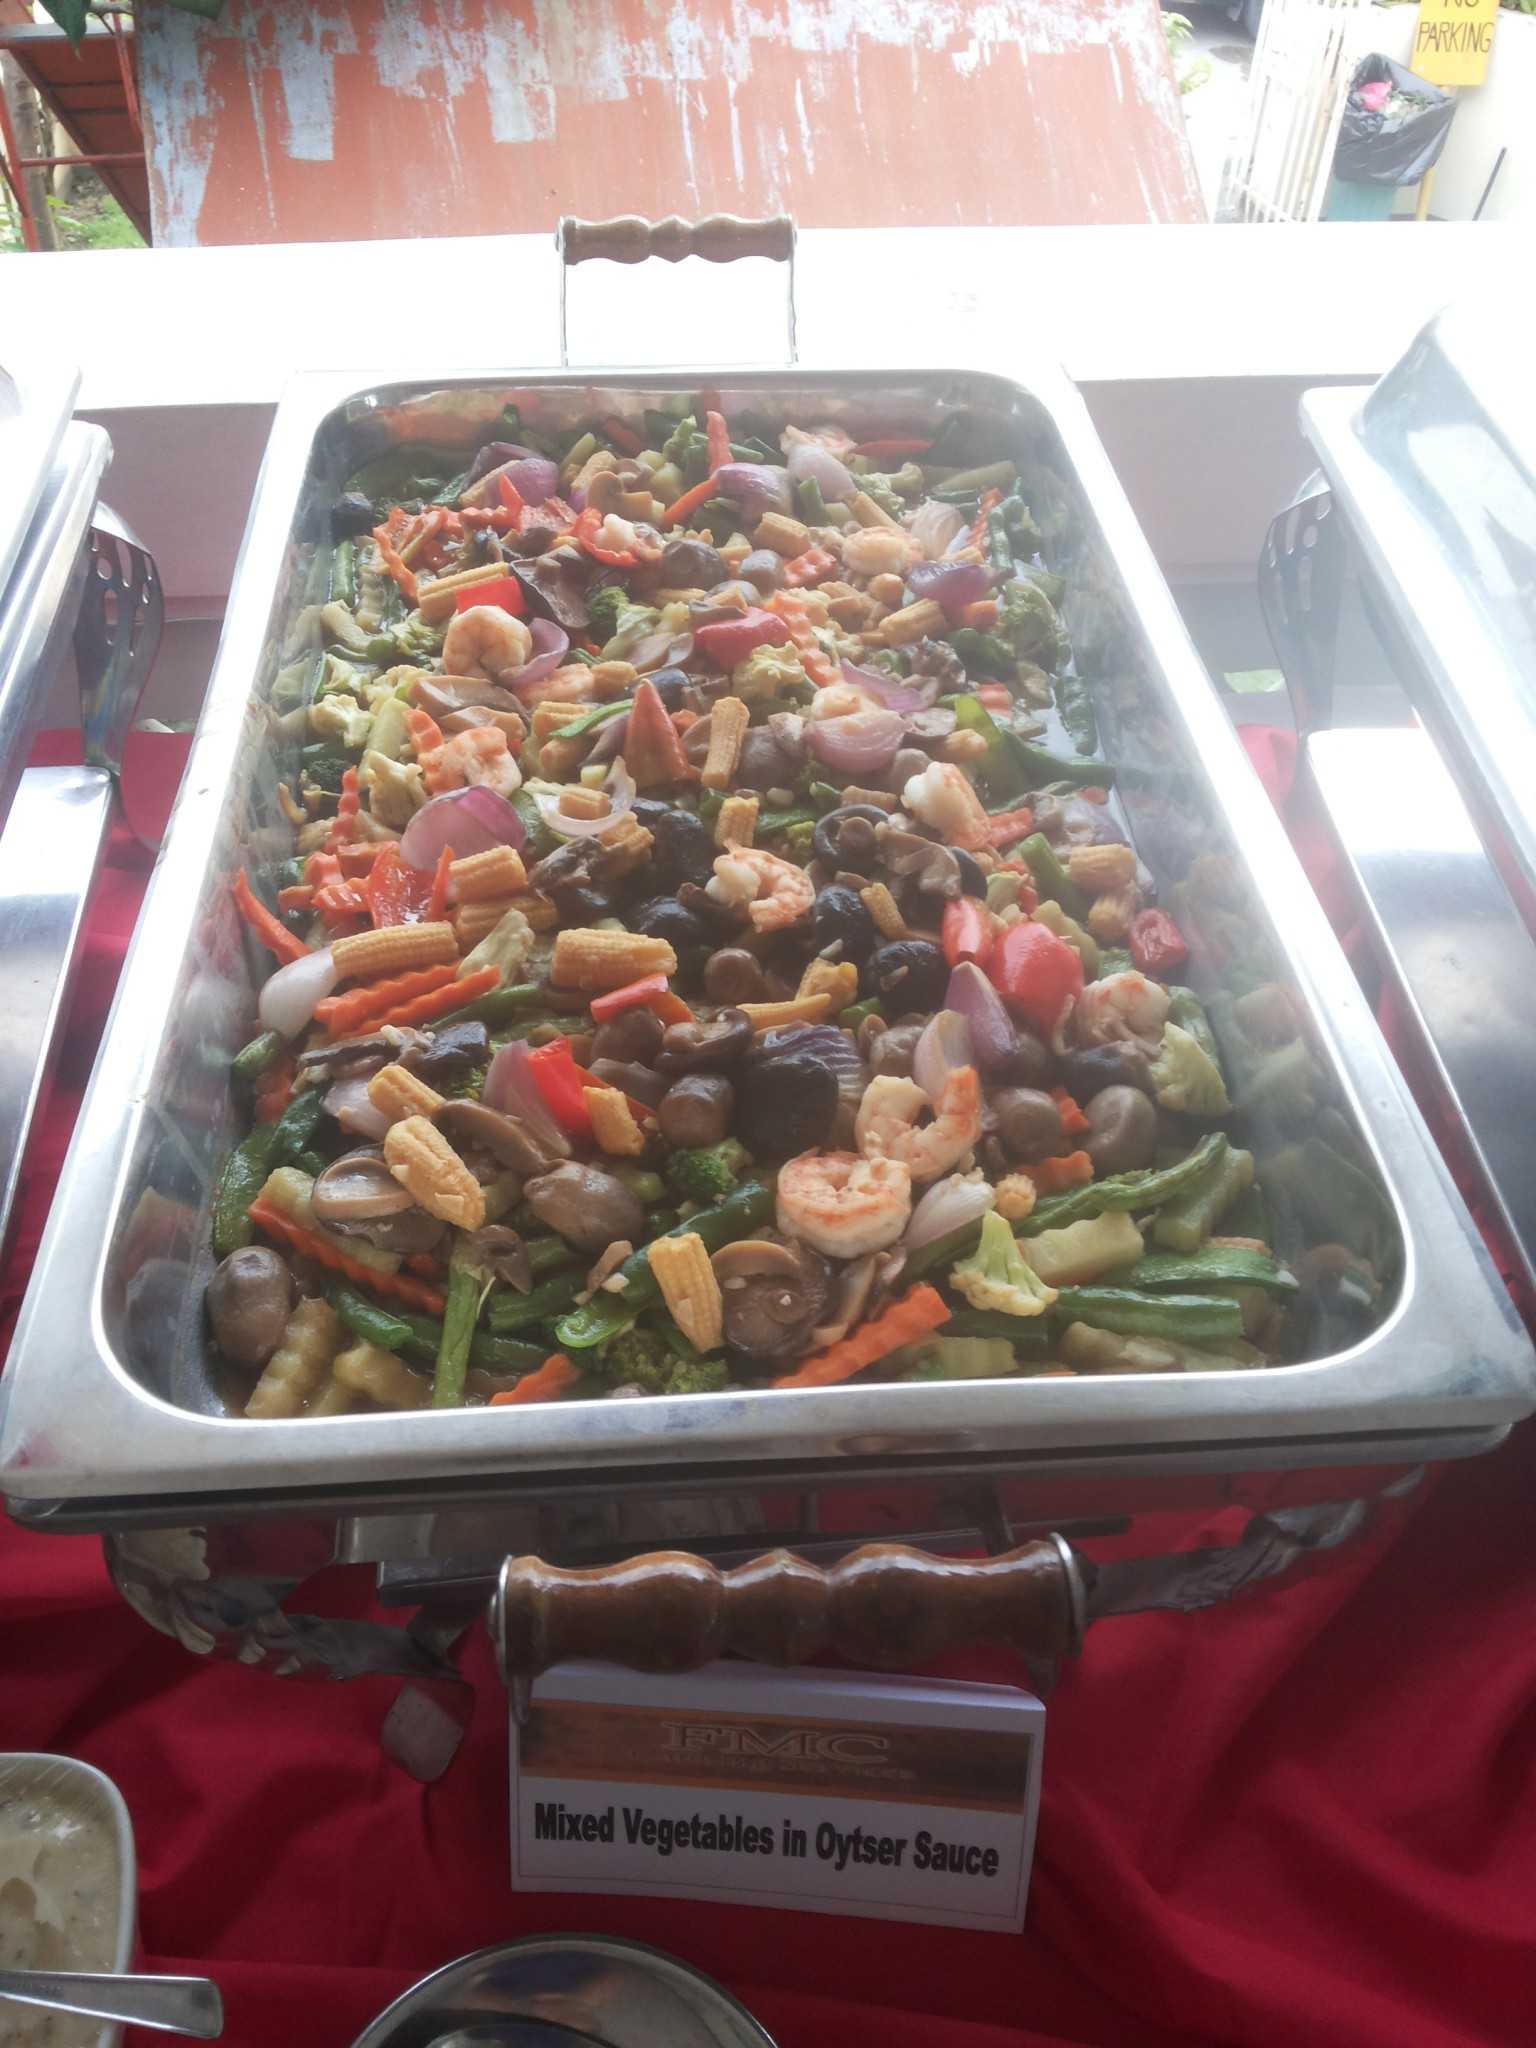 Mixed Vegtables in Oyster Sauce